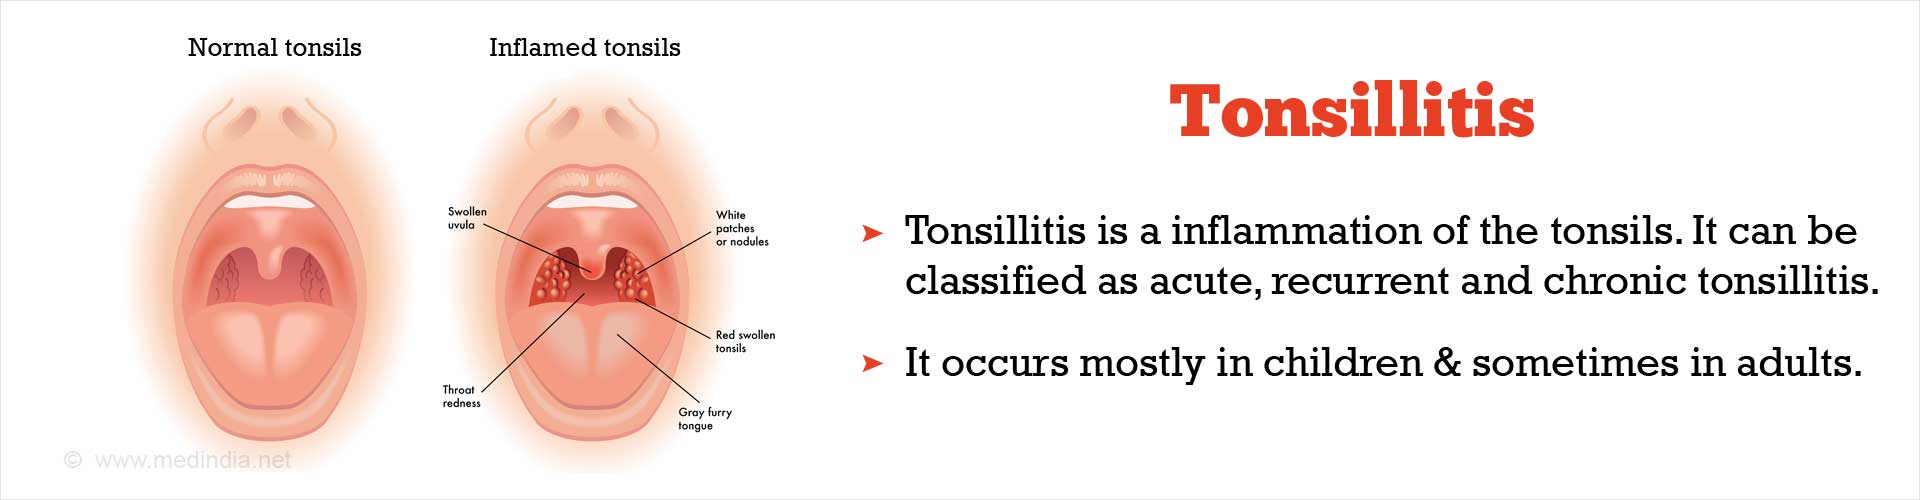 Cover Your Mouth With a Tissue or the Elbow When You Cough or Sneeze to Prevent Tonsillitis